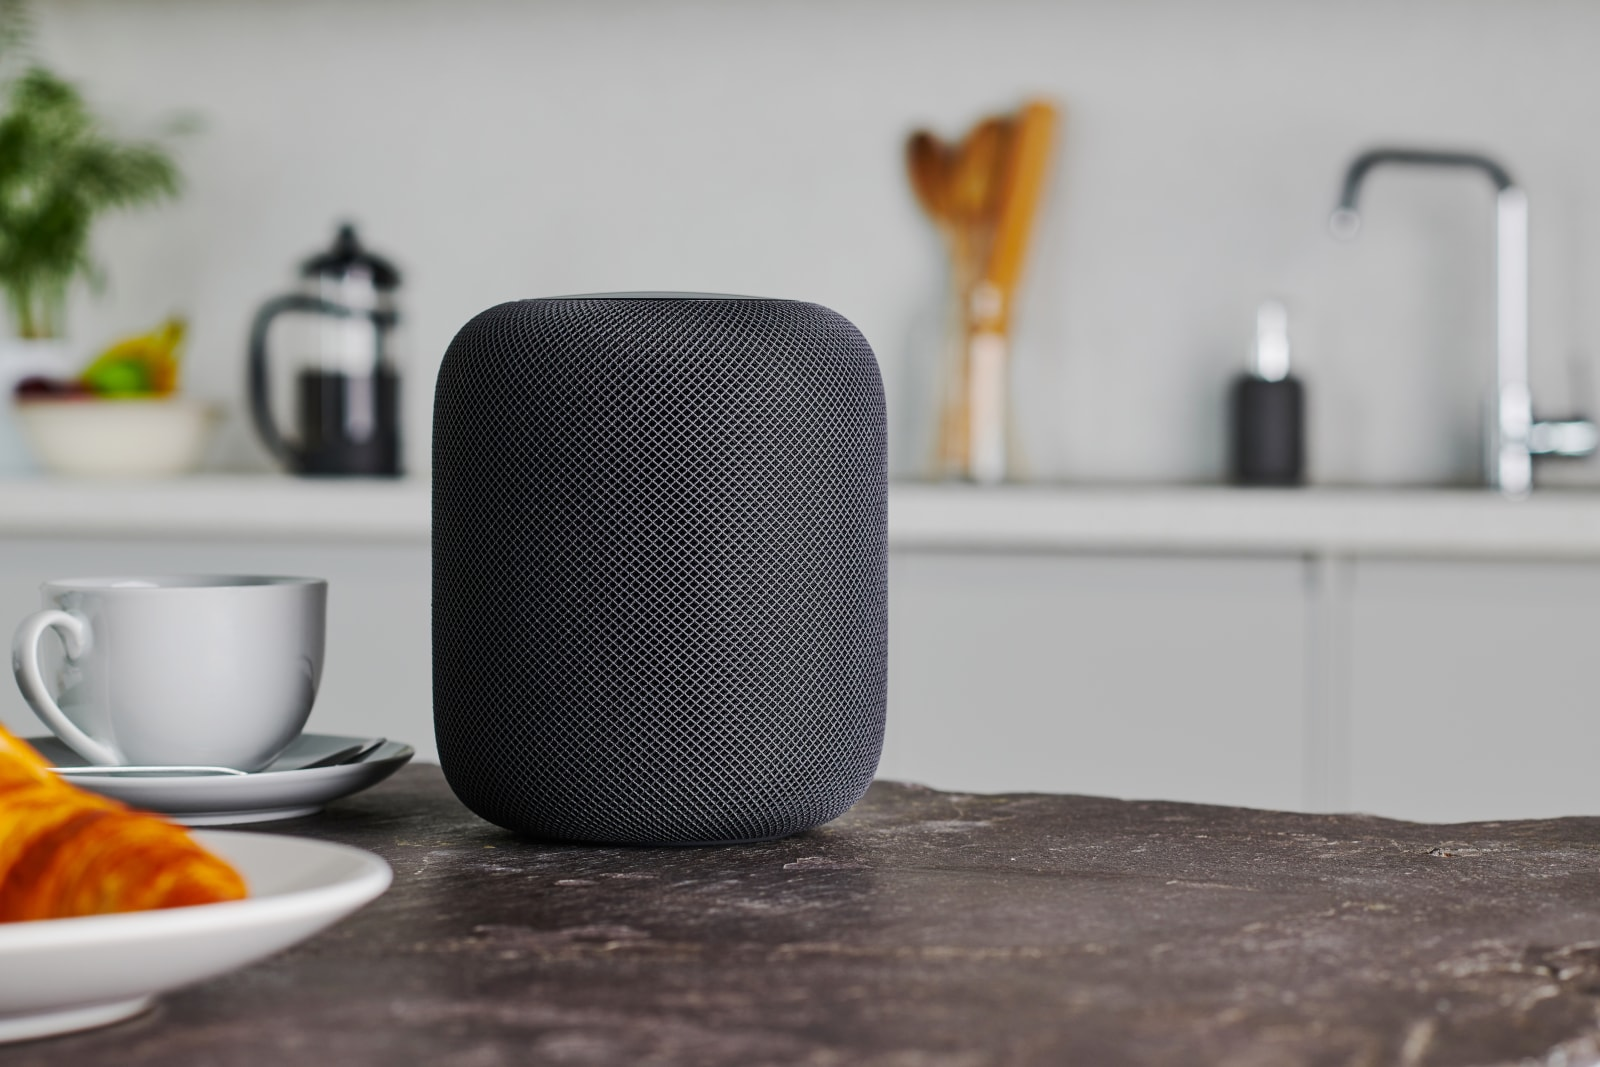 Siri will play third-party audio apps in iOS 13